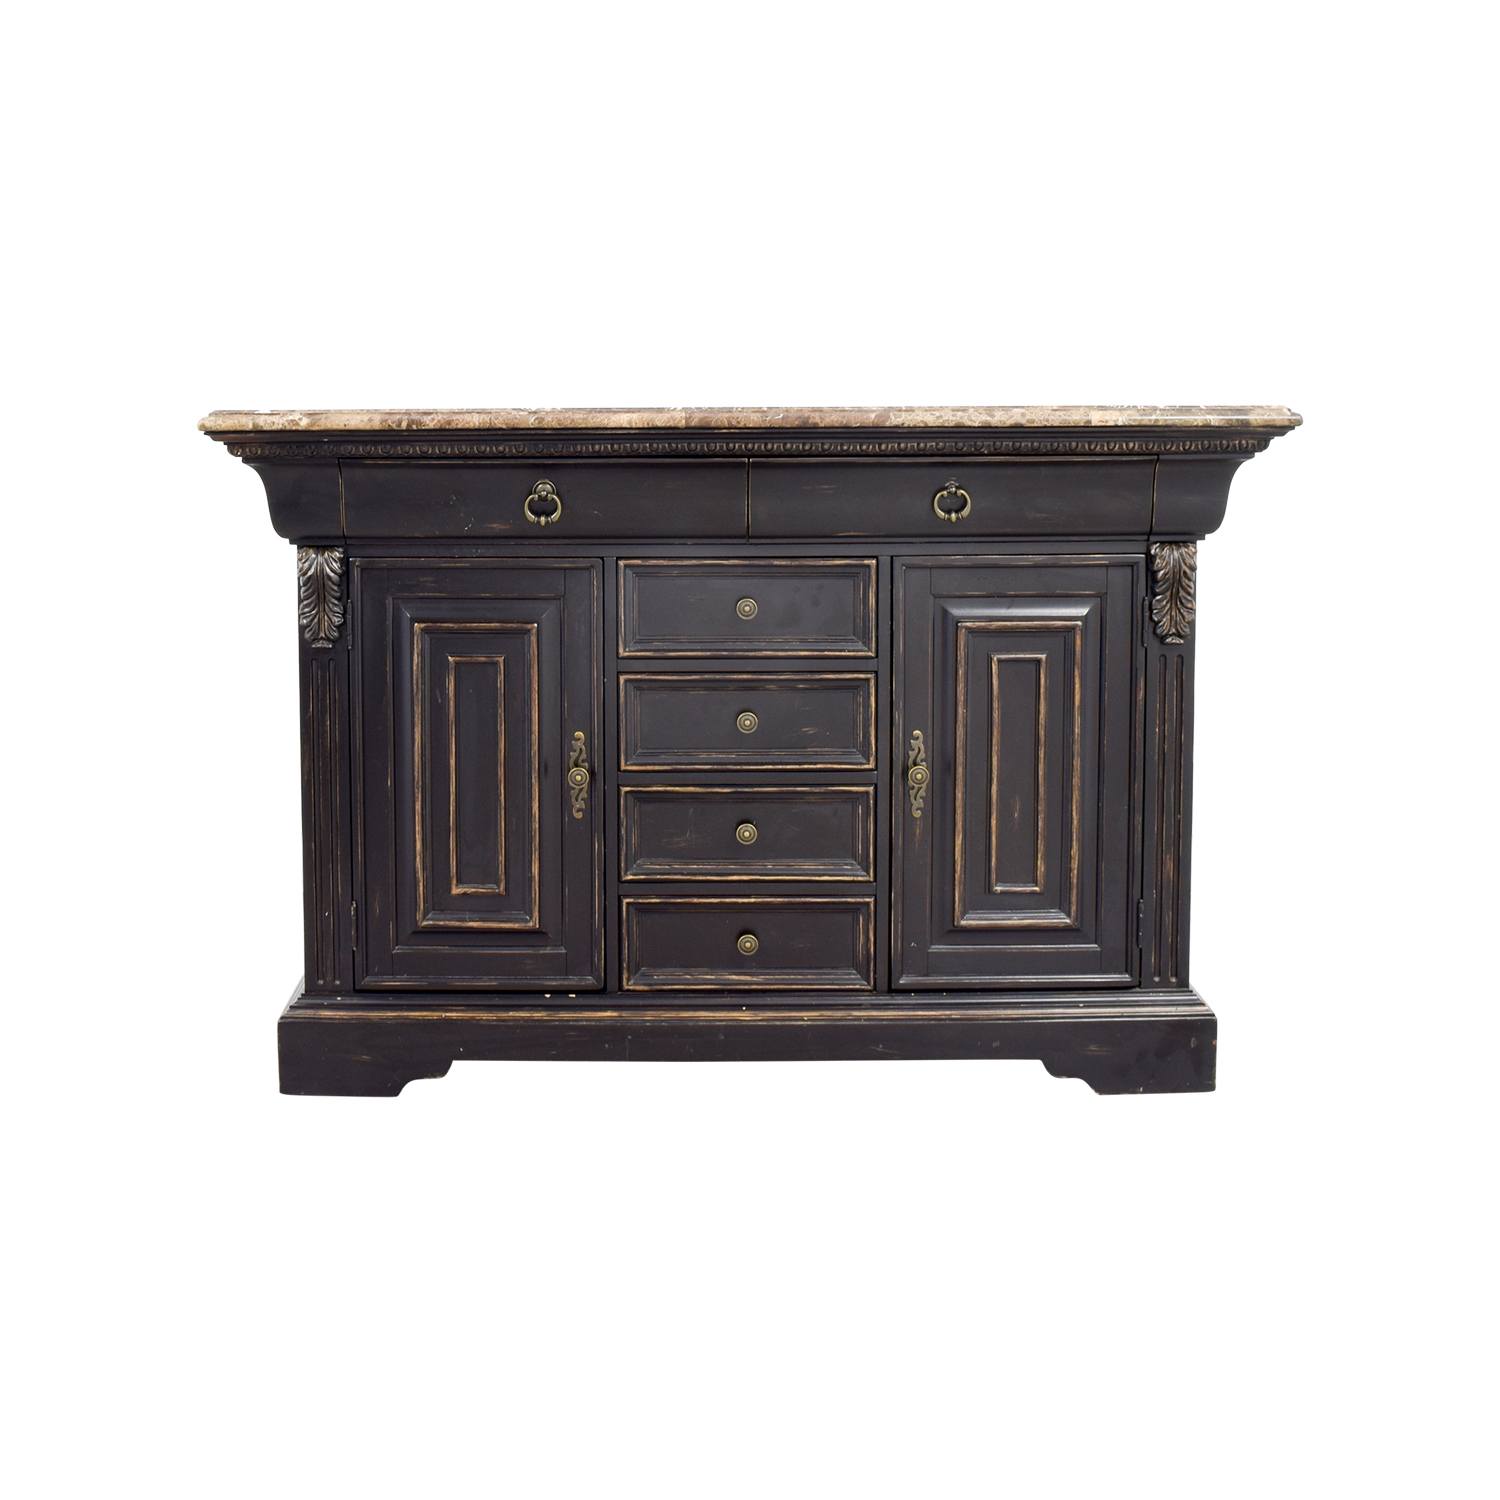 Raymour & Flanigan Black Sidebar with Marble Top / Dressers